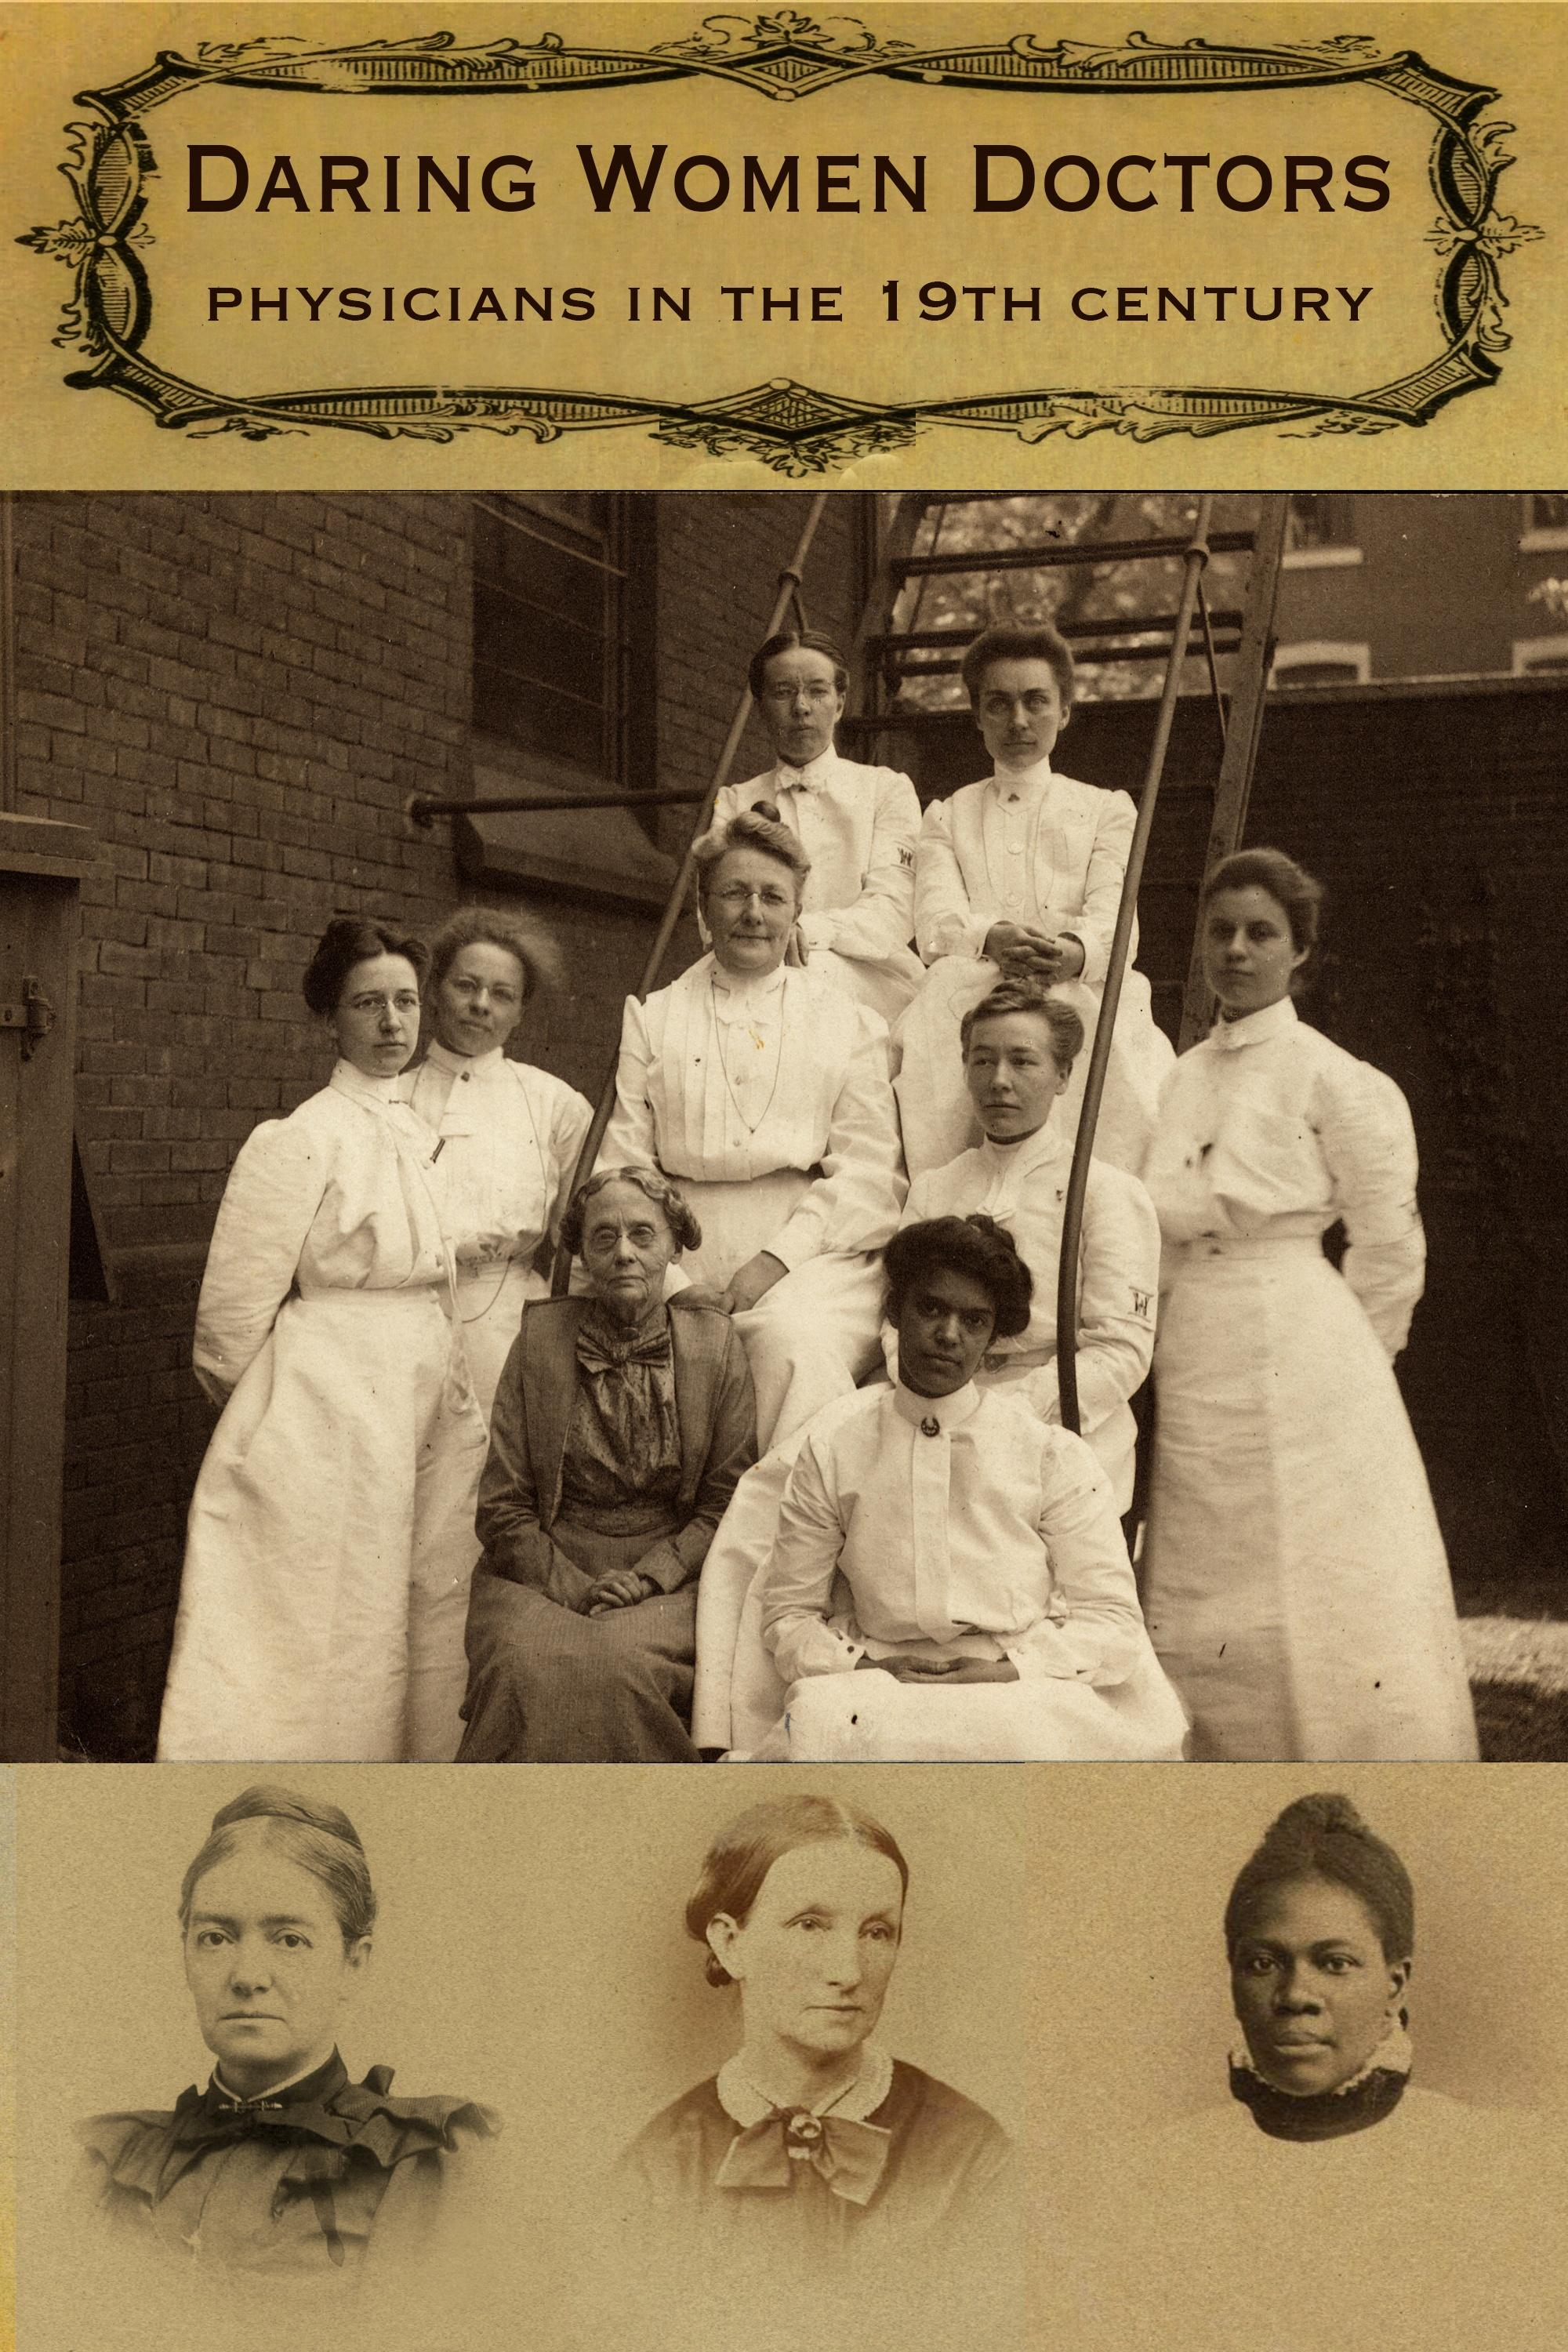 Daring Women Doctors: Physcians in the 19th Century